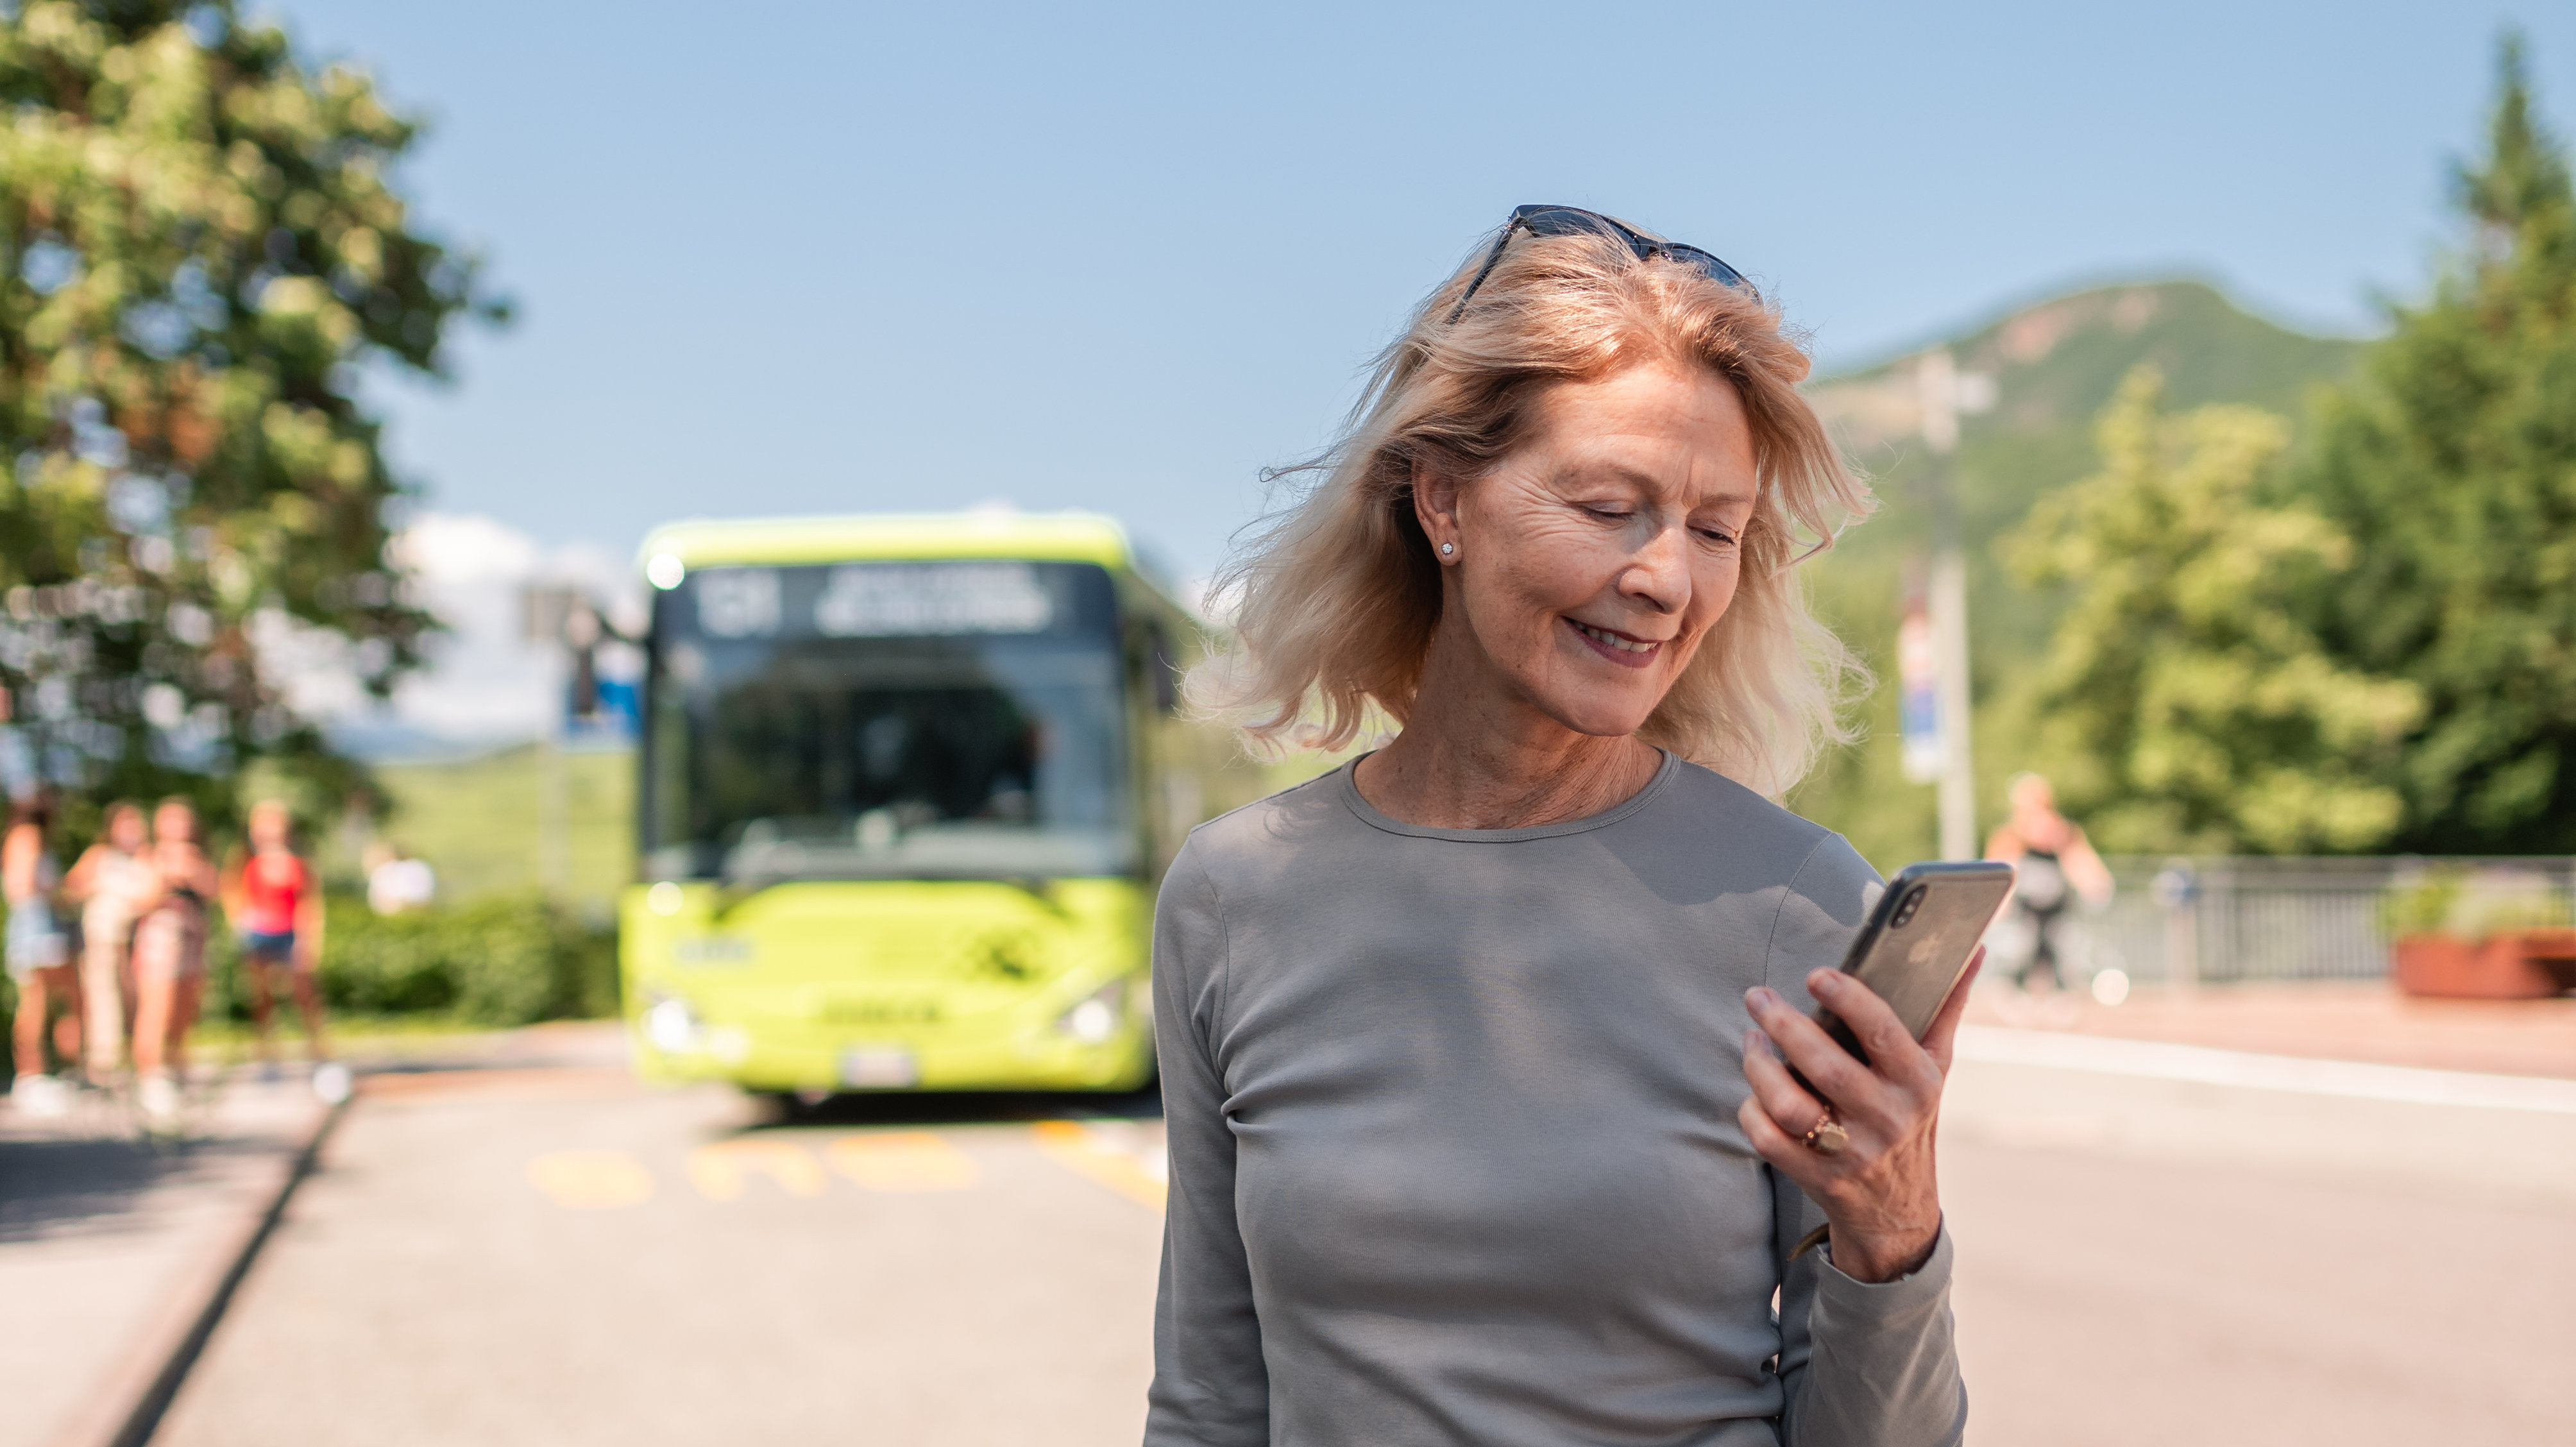 Woman with mobile next to a bus